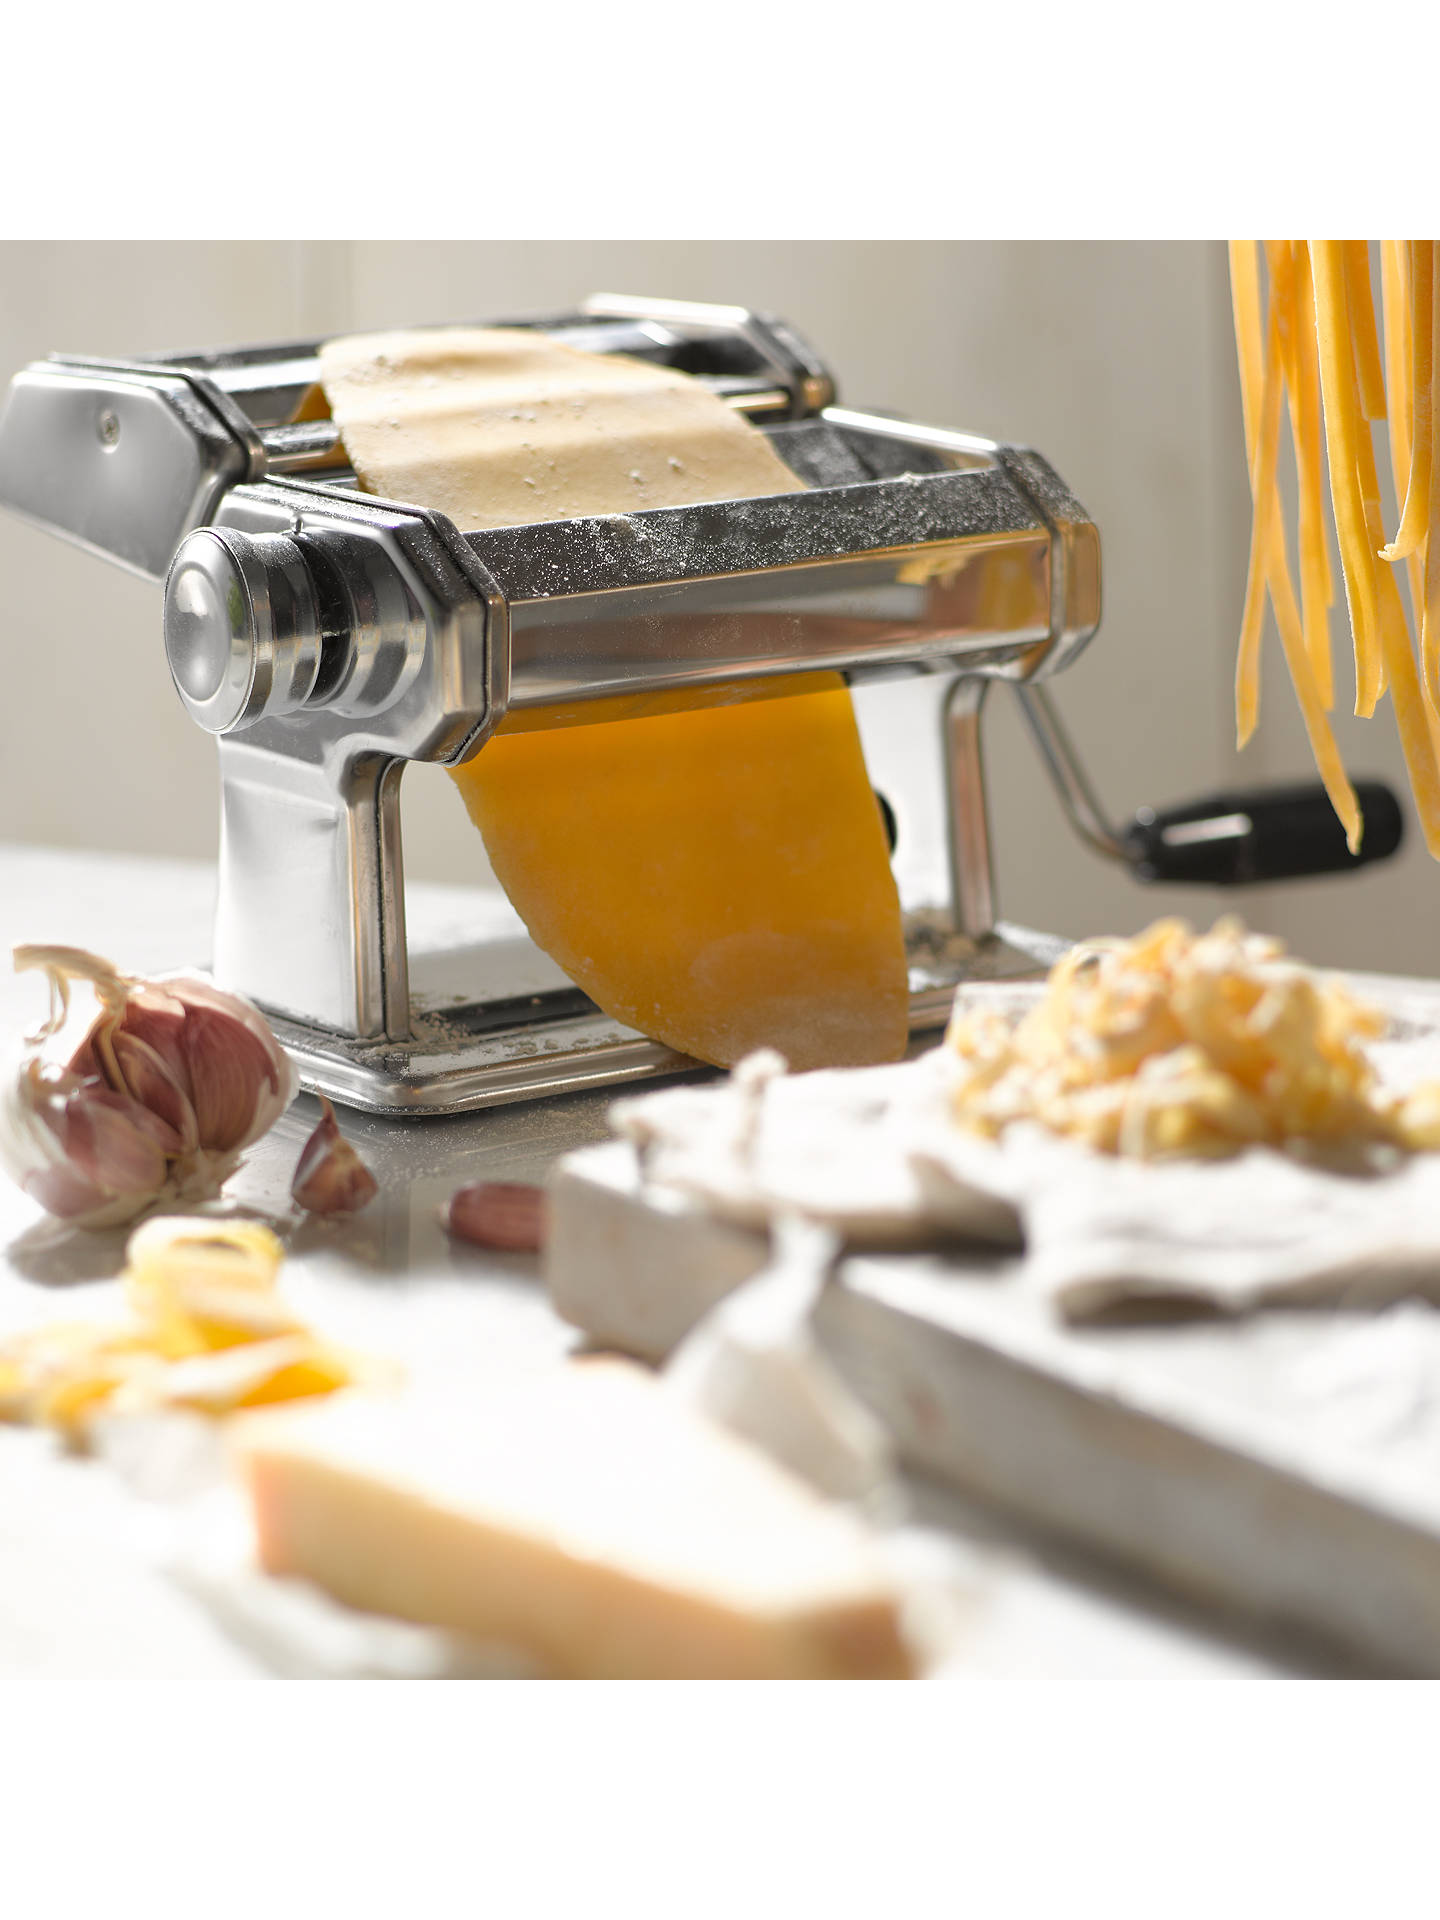 BuyJohn Lewis & Partners Pasta Machine Online at johnlewis.com